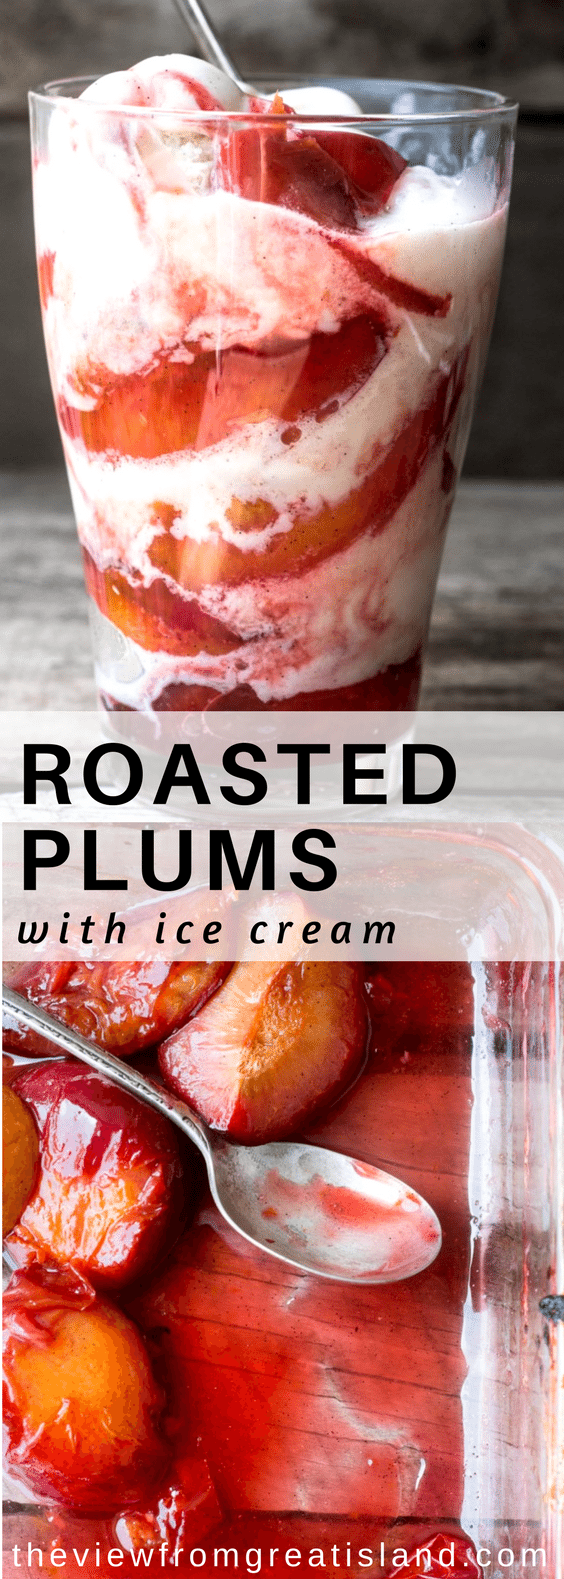 Roasted Plums with Ice Cream is a simple dessert with a sly secret --- you can use that rock hard fruit that shows up in markets way before it's actually ripe --- roasting brings out all of the lusciousness, and nobody'll be the wiser. #fruit #fruitdessert #plums #plumrecipe #roastedplums #stonefruit #summerdessert #dessert #icecream